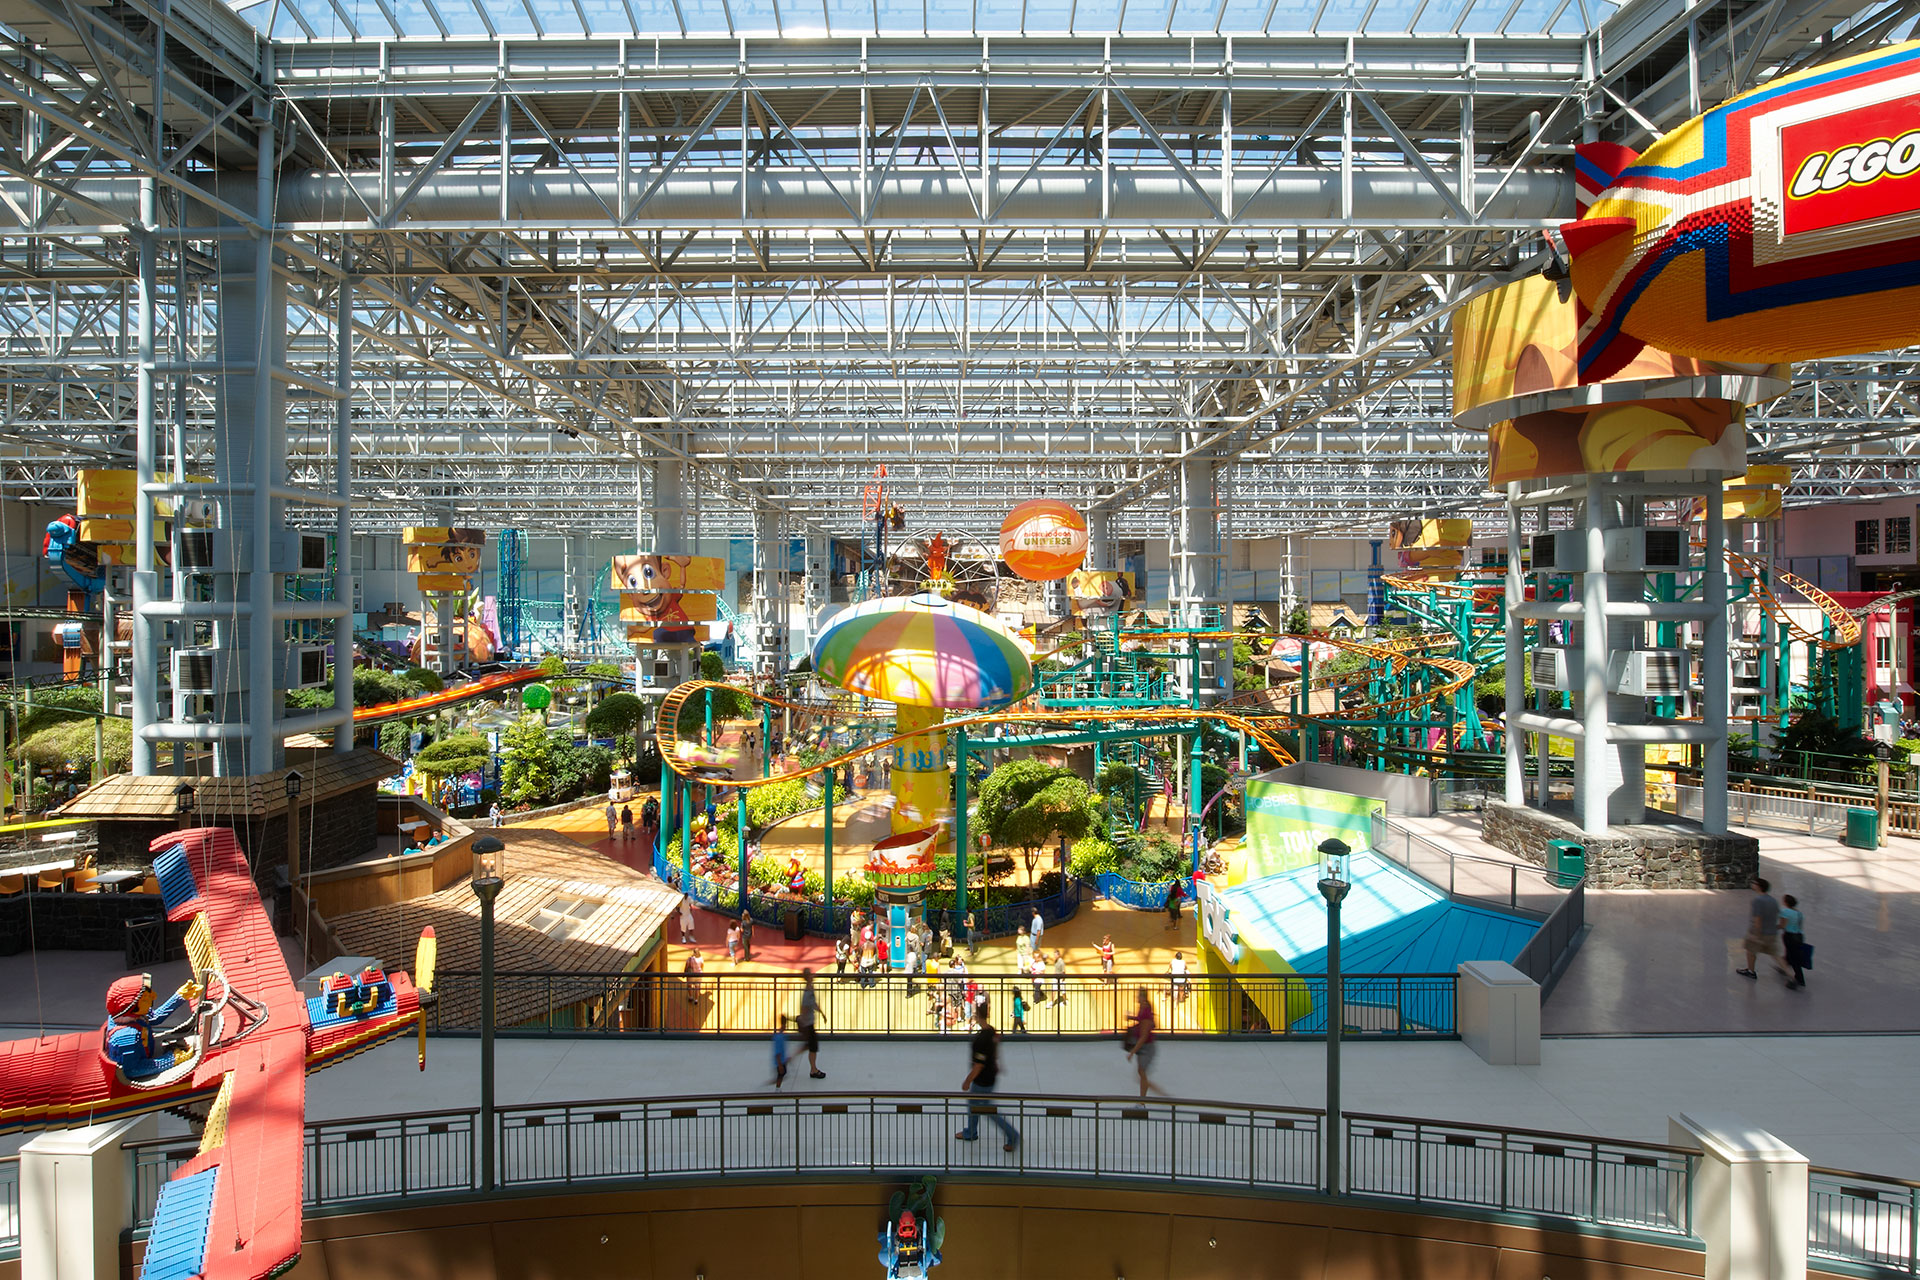 Nickelodeon Universe; Courtesy of Nickelodeon Universe